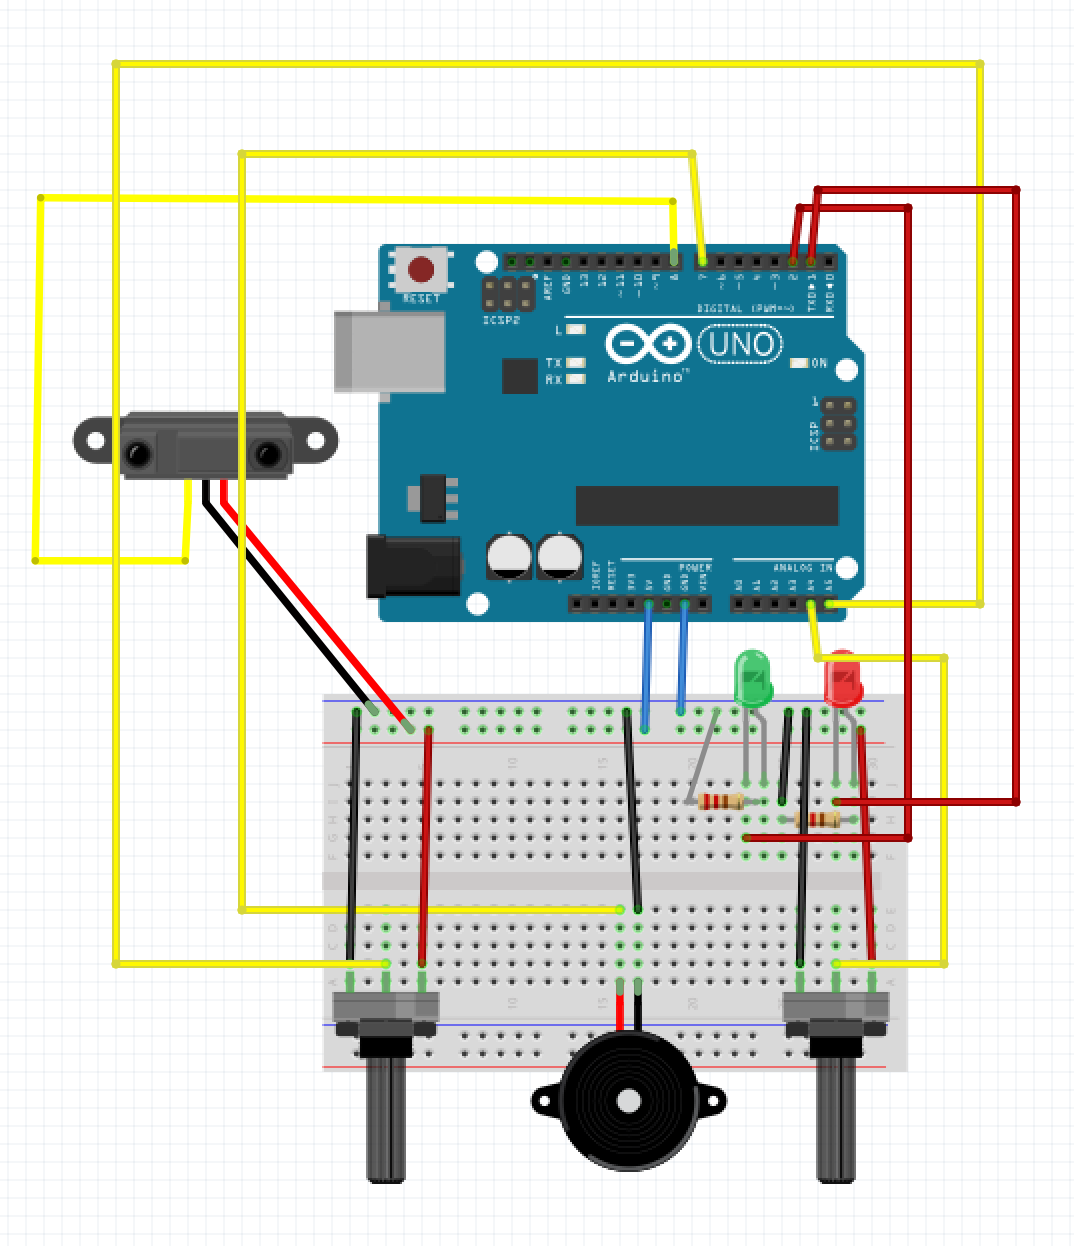 Pir Motion Sensor Game Gentry Demchaks Blog Diagram Circuit